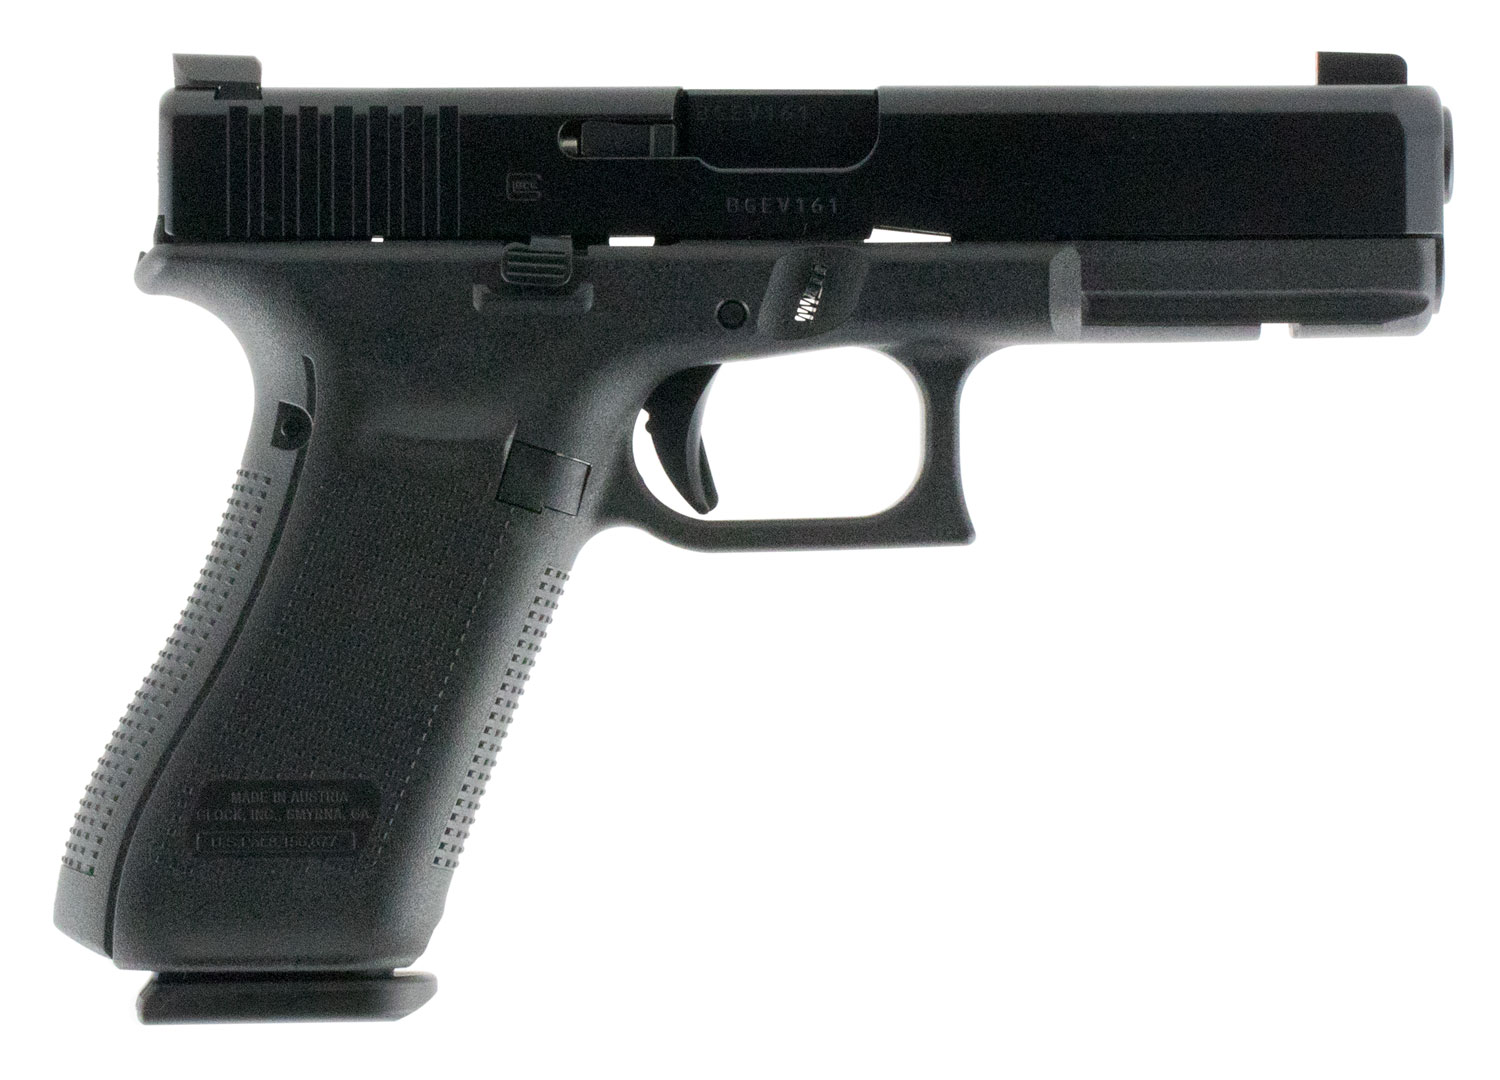 Glock PA175031AB G17 Gen5 Double 9mm Luger 4.49